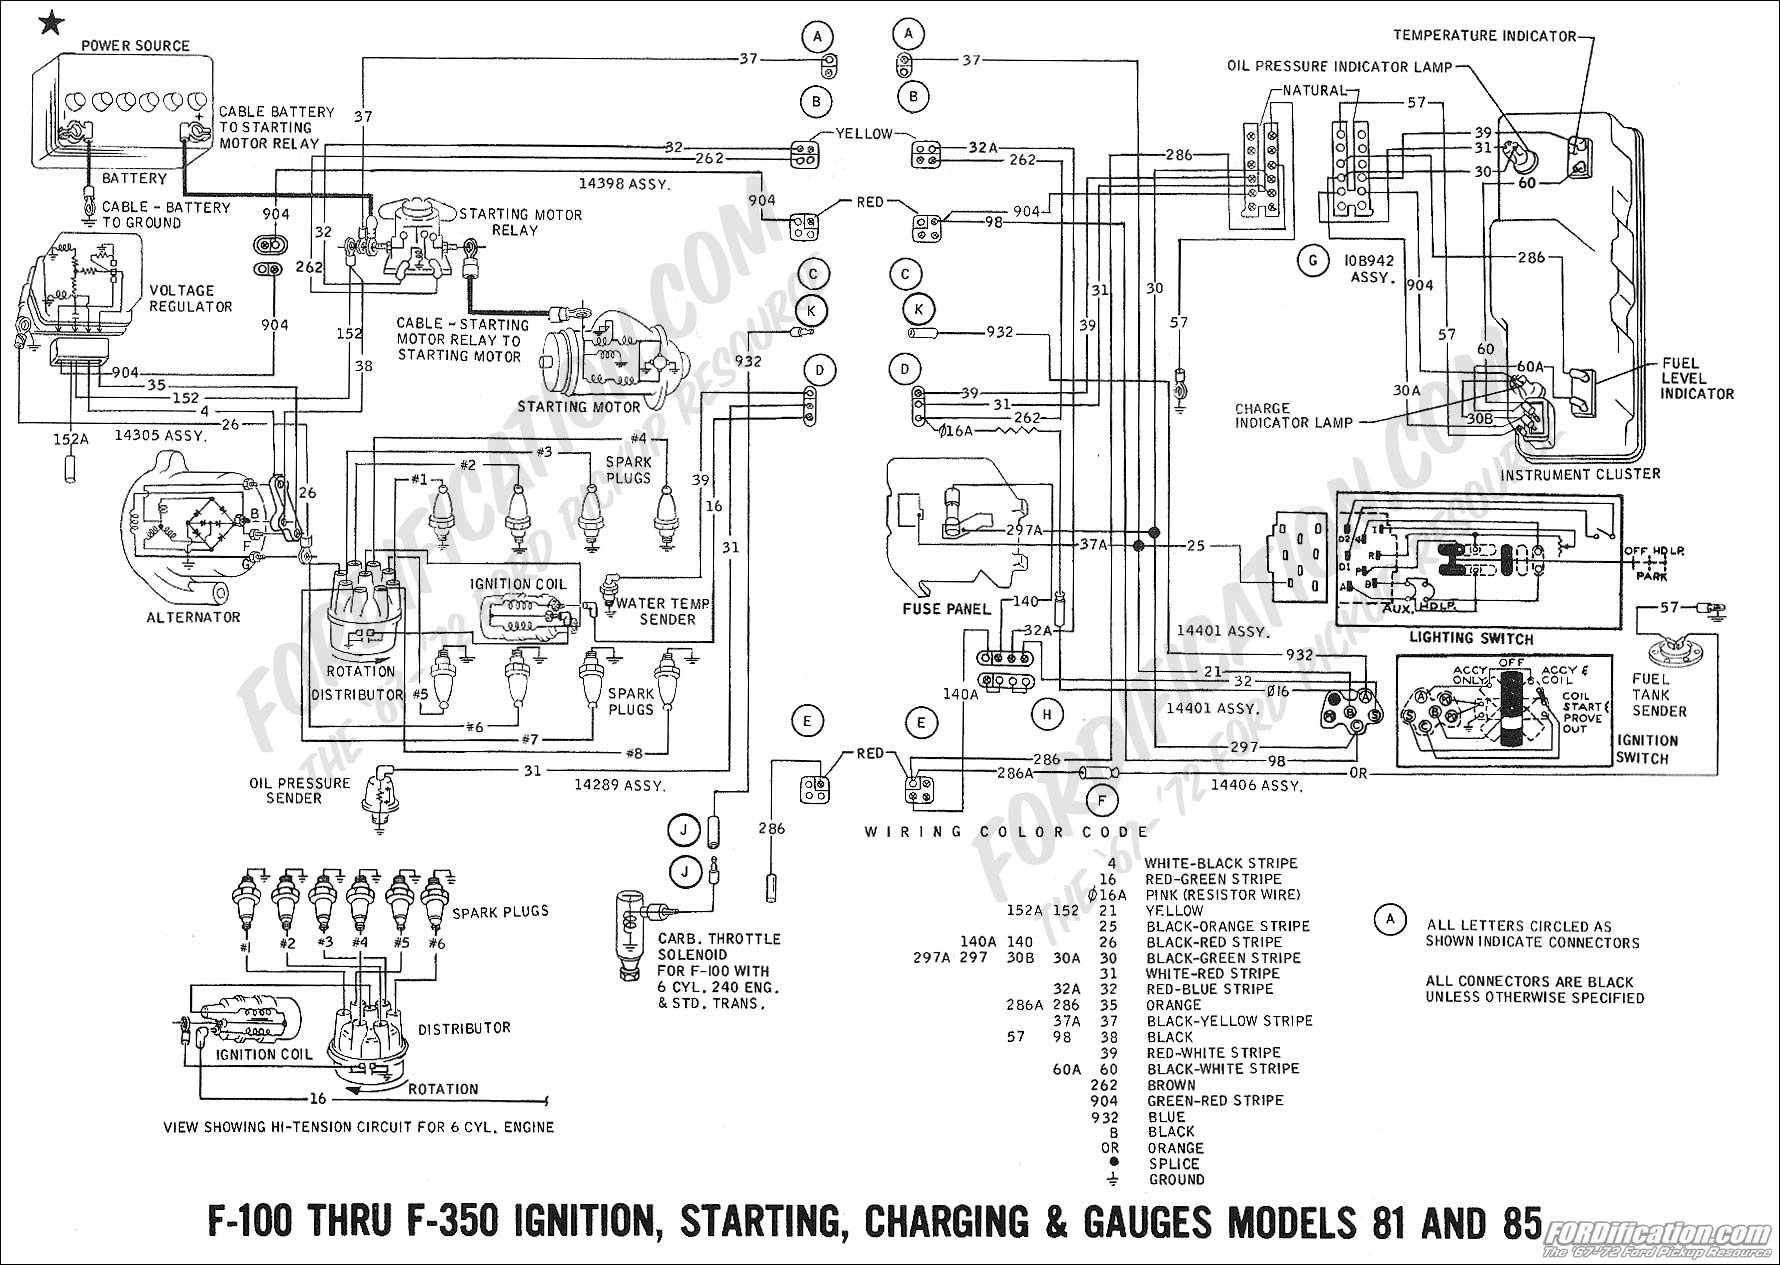 66 Ford Steering Wheel Wiring Diagram Free Picture Just Another Chevy Truck Harness 70 F100 Alternator Trusted Rh 18 16 5 Gartenmoebel Rupp De Vw Gto